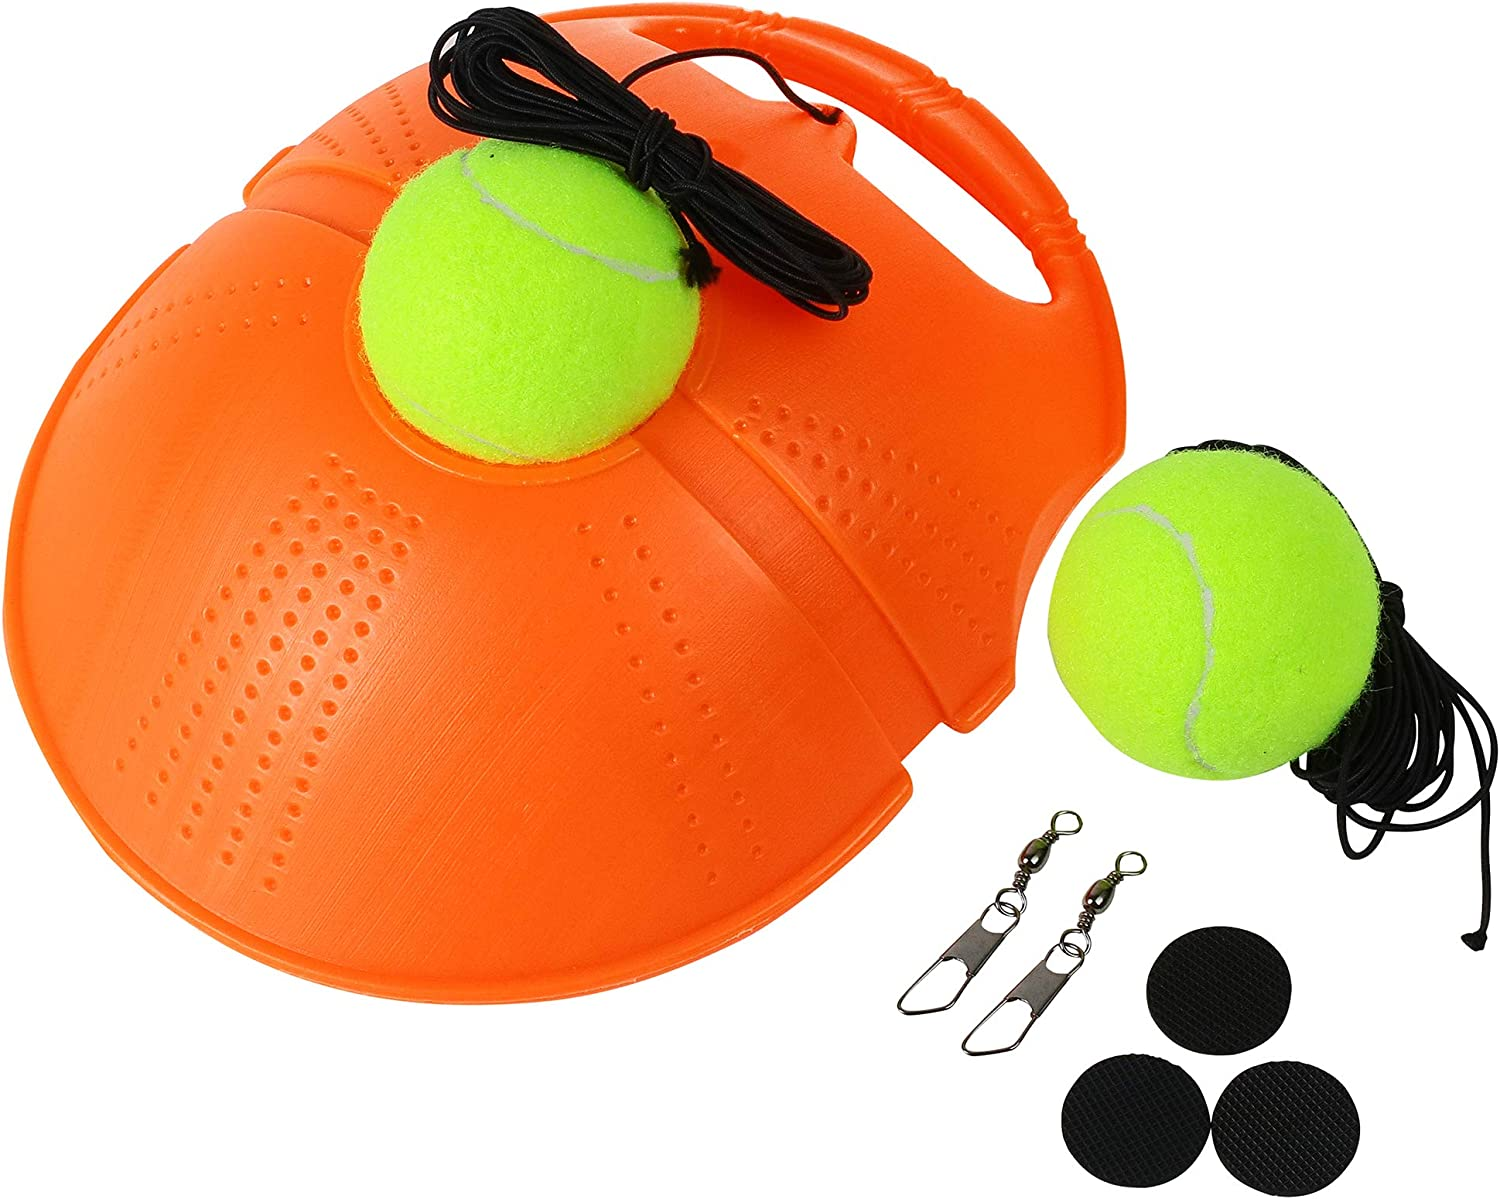 XFITPRO SET - Springen Tennis Trainer Rebound, Tennis Self Trainer Tool, Tennis Practice Rebounder, Solo Tennis Trainer Rebound Ball With String, Extra 2 Strong Return Strings 2 Balls & Carry Mesh Bag : Sports & Outdoors